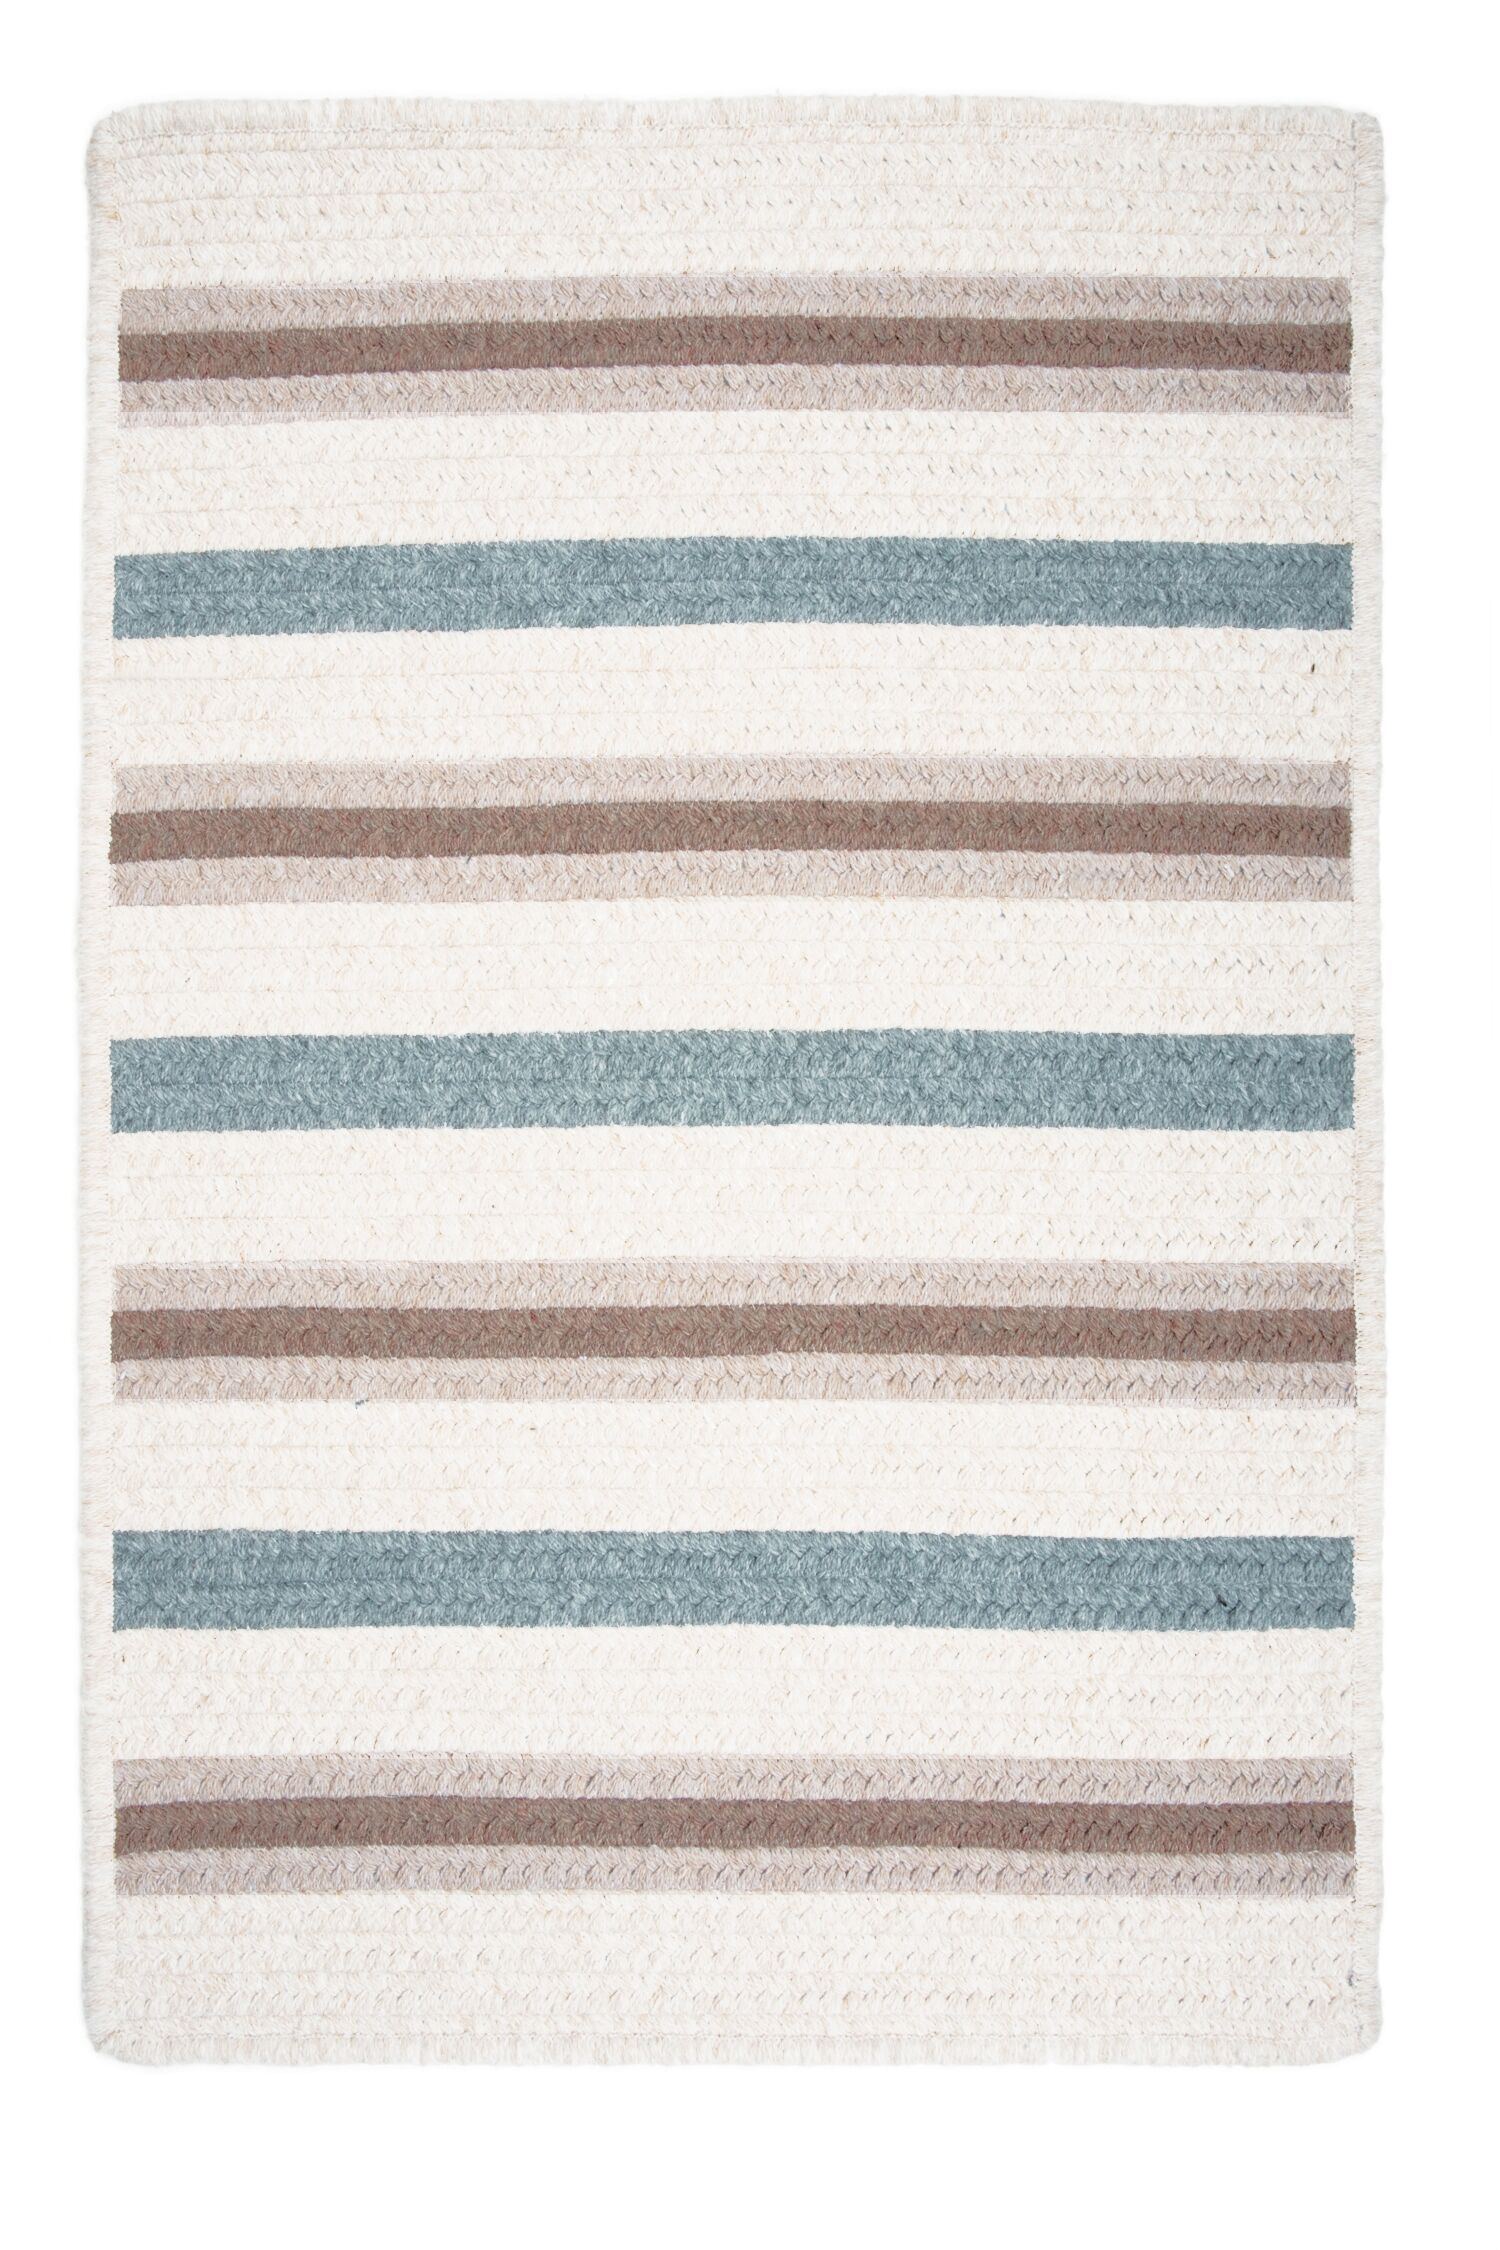 Allure Sparrow Ivory Area Rug Rug Size: Rectangle 12' x 15'